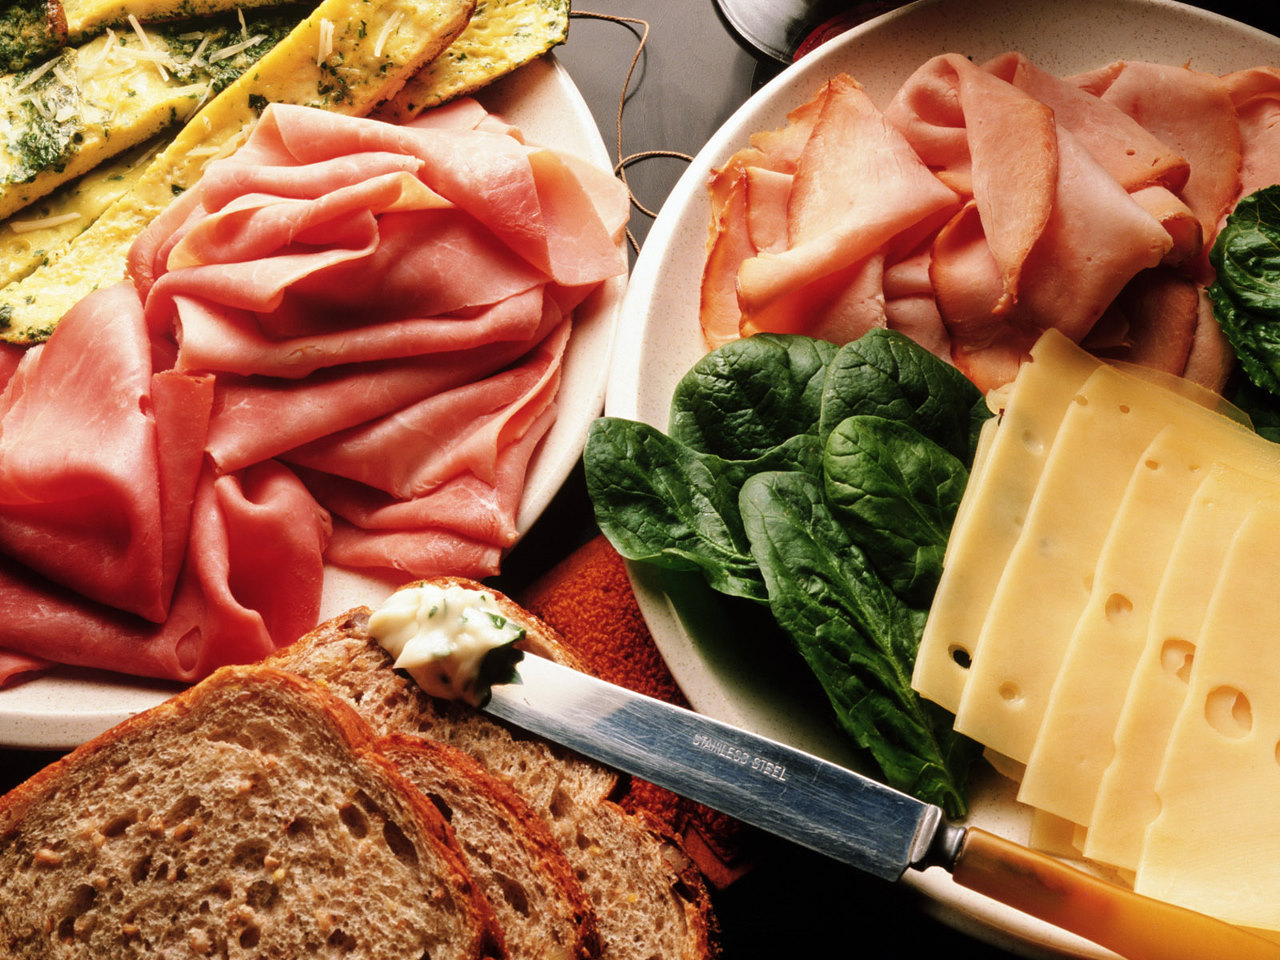 italian food images deli cold cuts hd wallpaper and